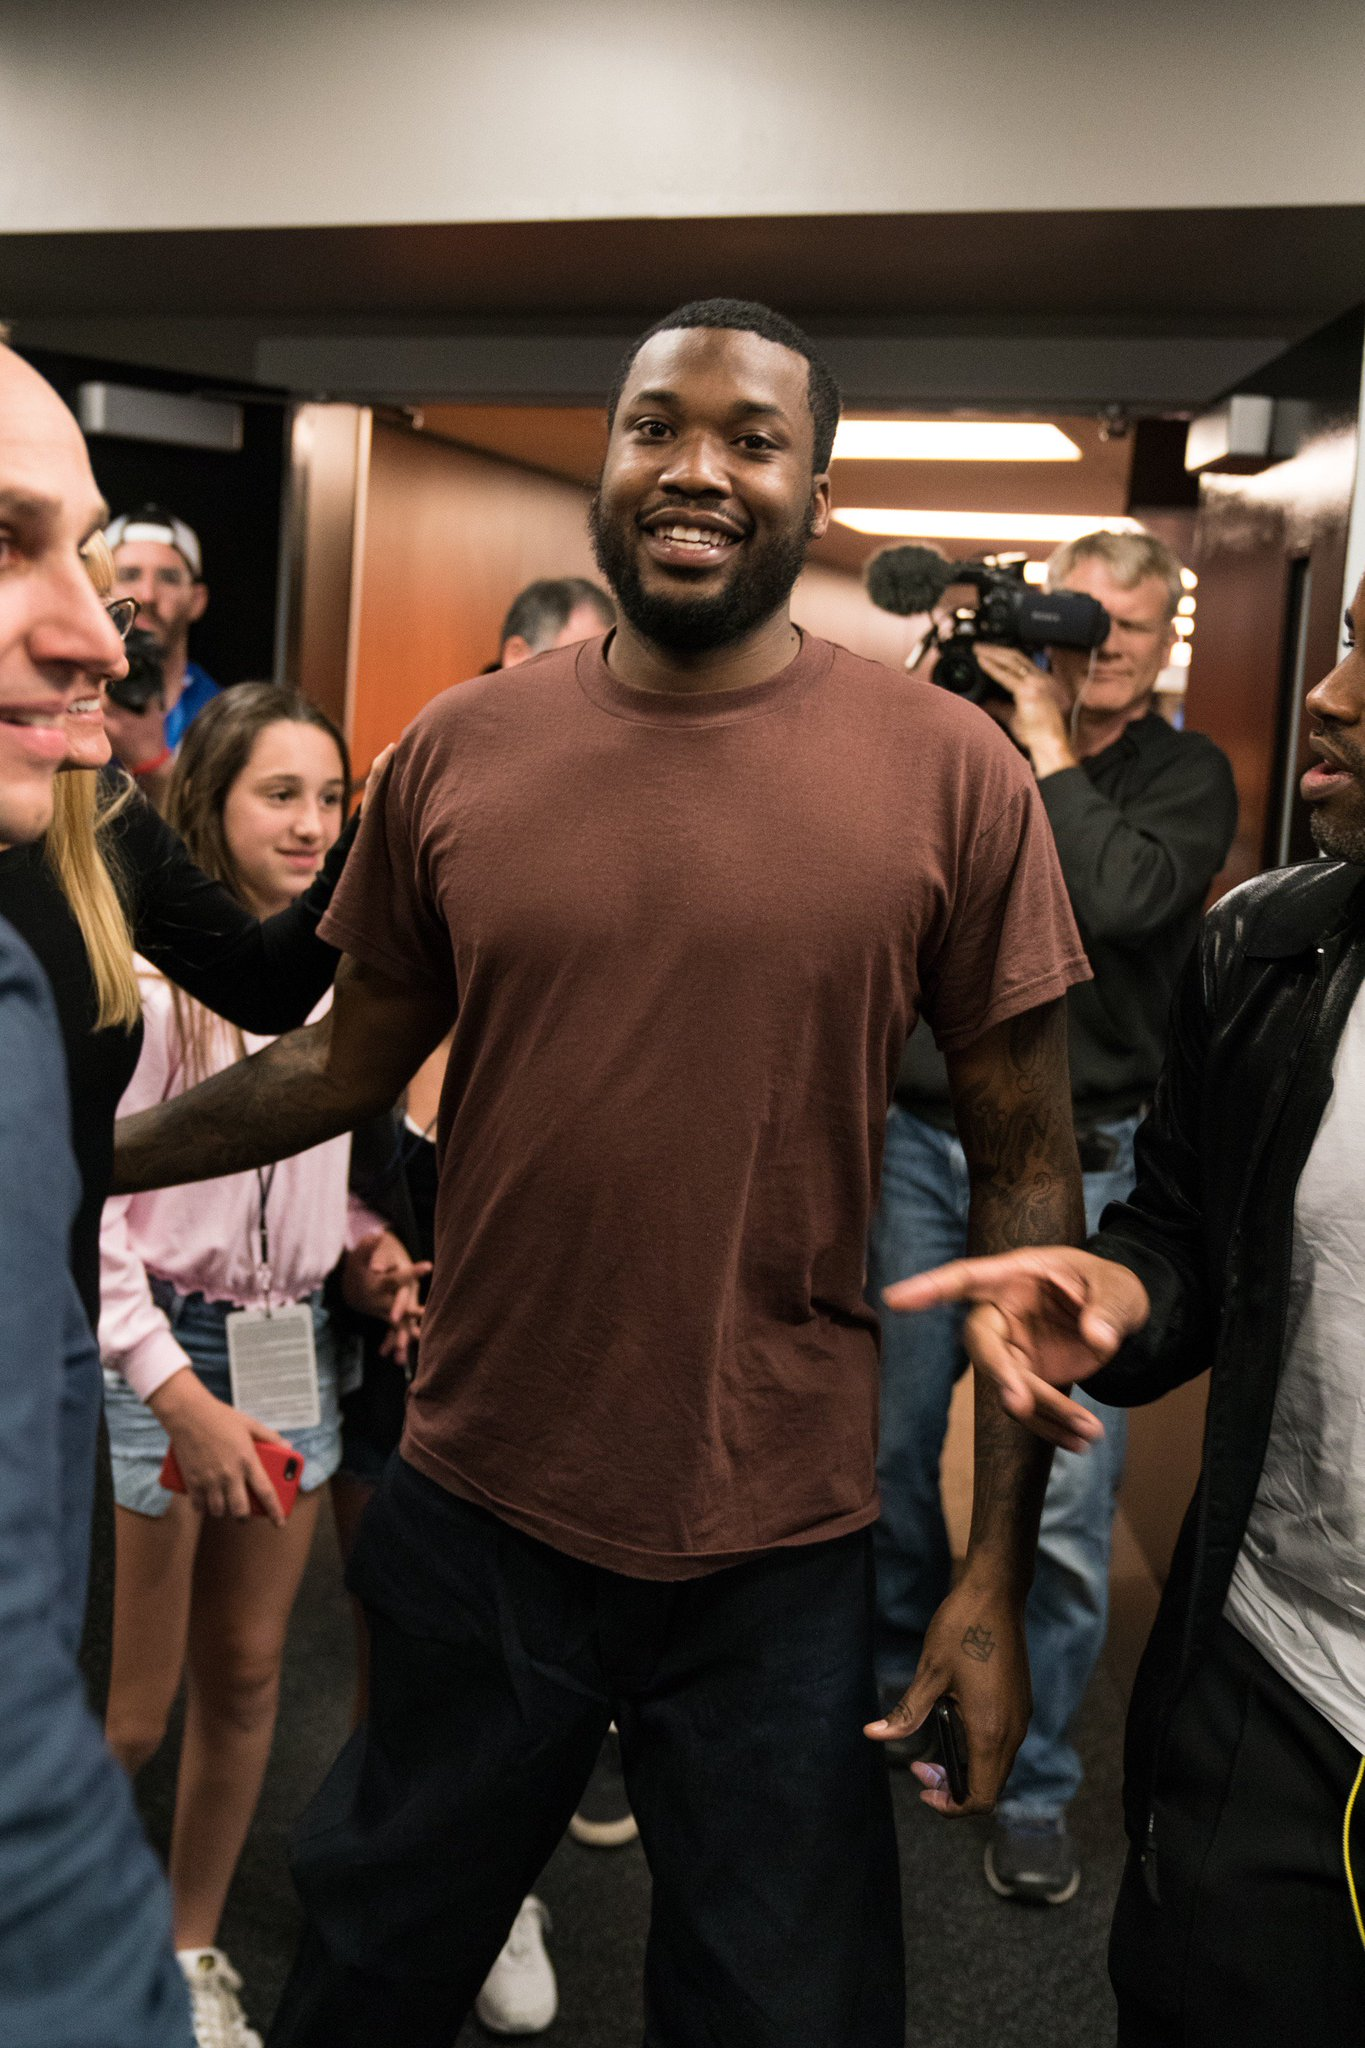 .@MeekMill has arrived.  #PhilaUnite x #HereTheyCome https://t.co/pub80aDdnI